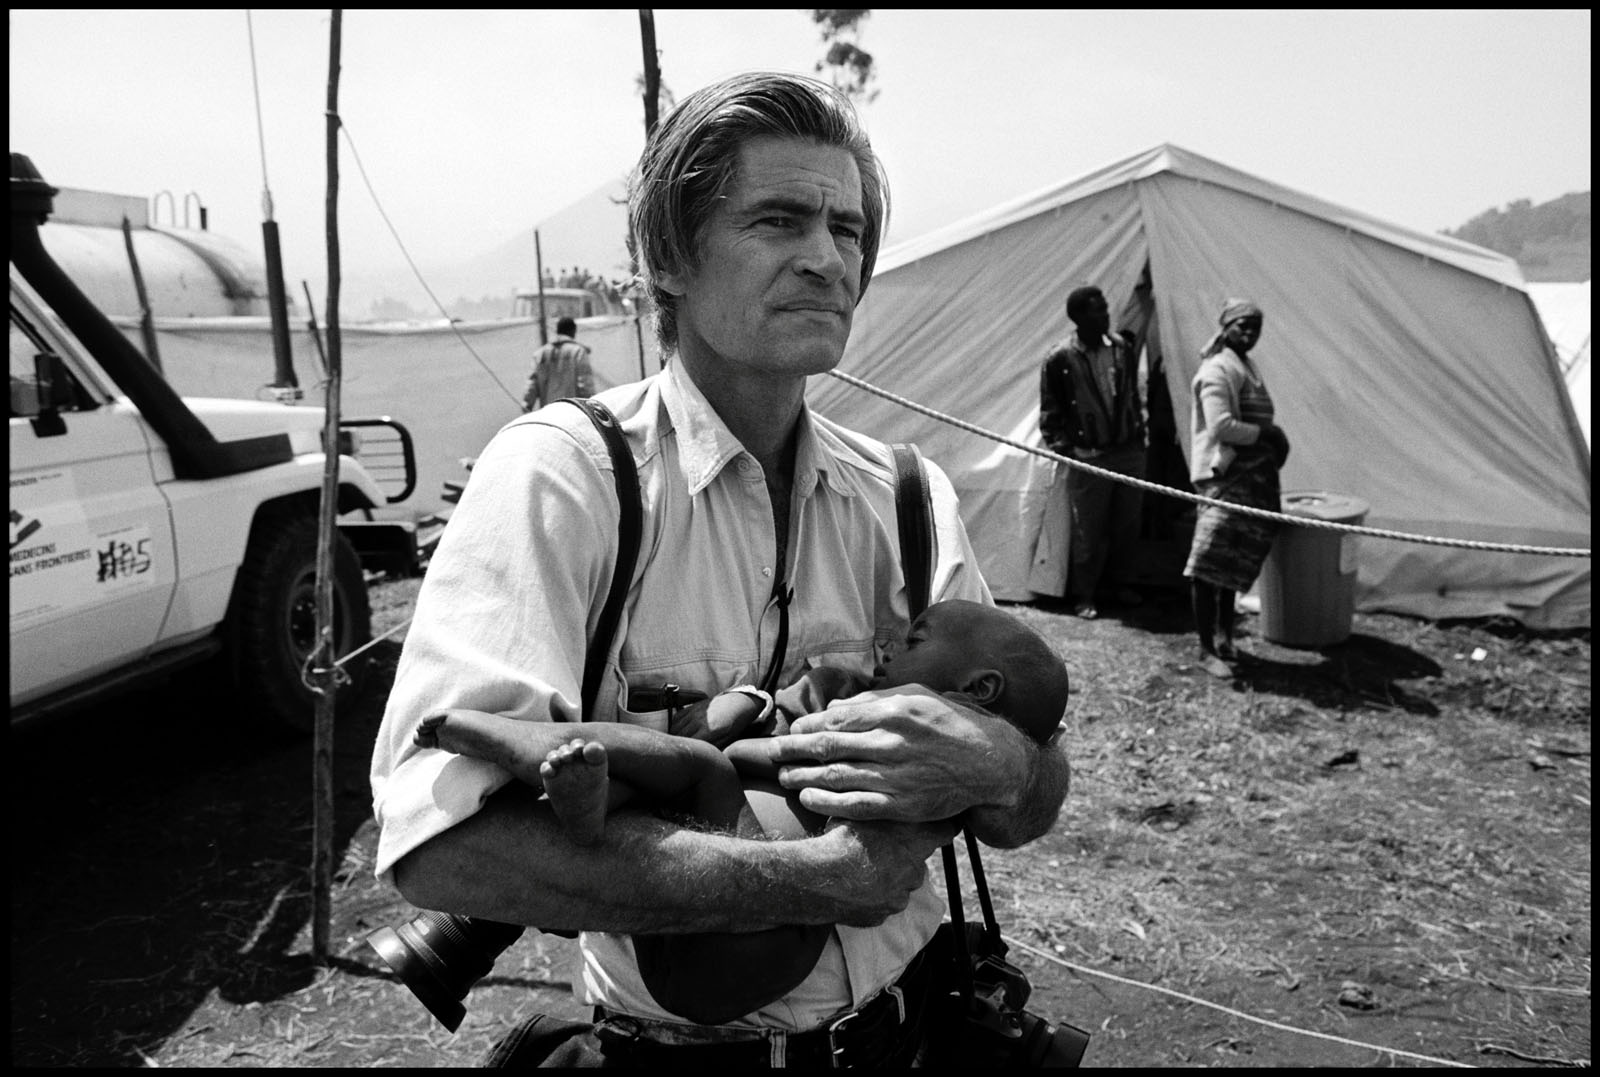 James Nachtwey, covering the Rwandan civil war, carries a baby girl orphaned by the massacres there to a shelter. Zaire, 1994.